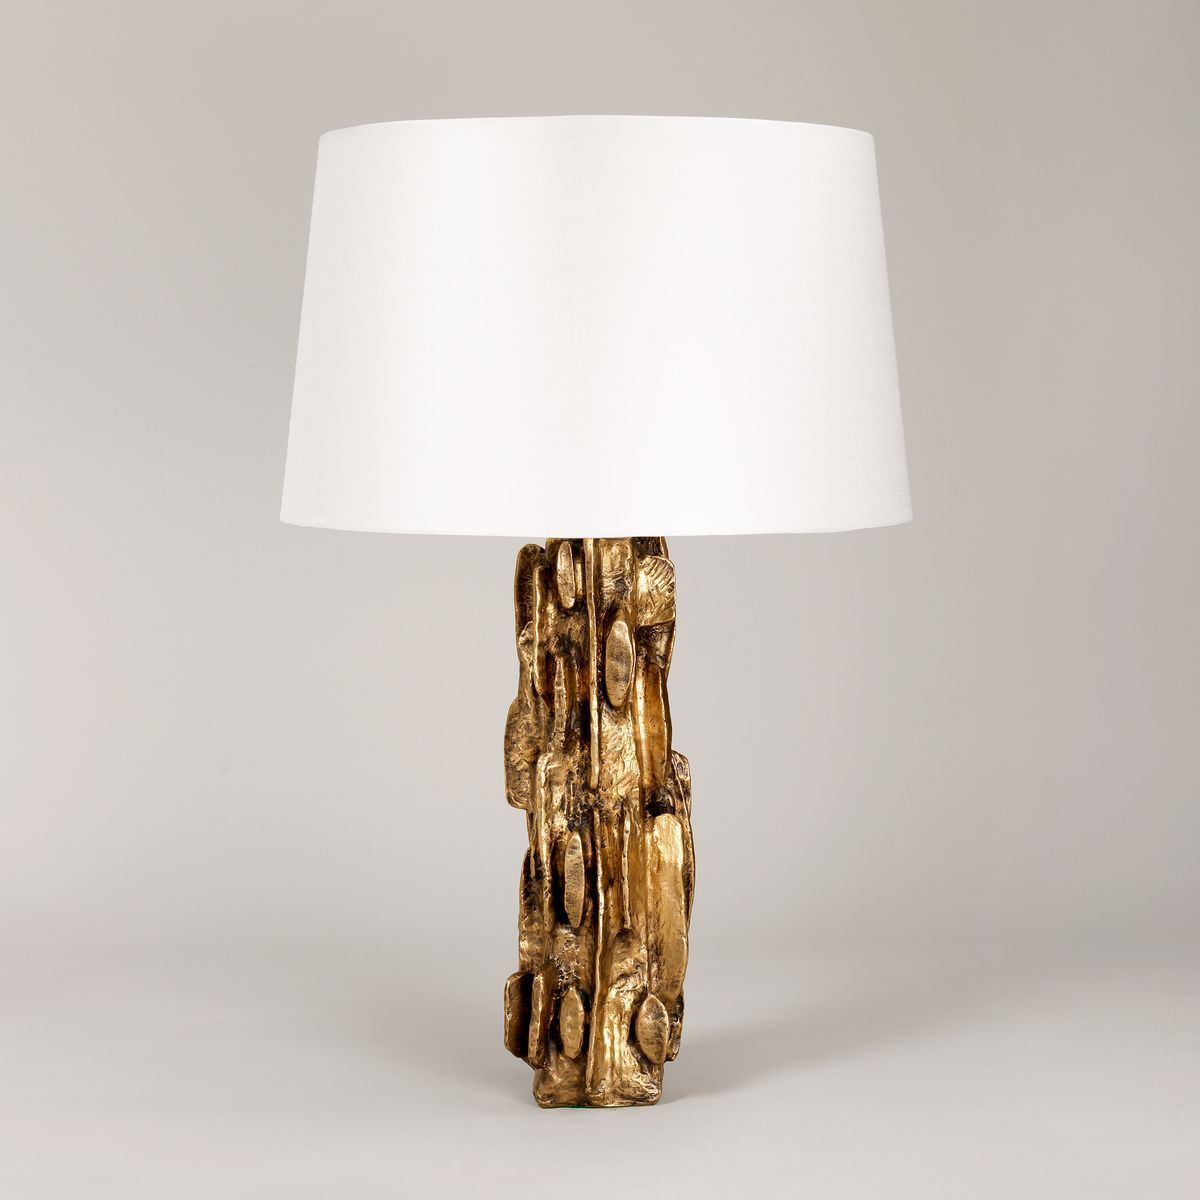 Montana Sculptural Table Lamp Vaughan Designs (With